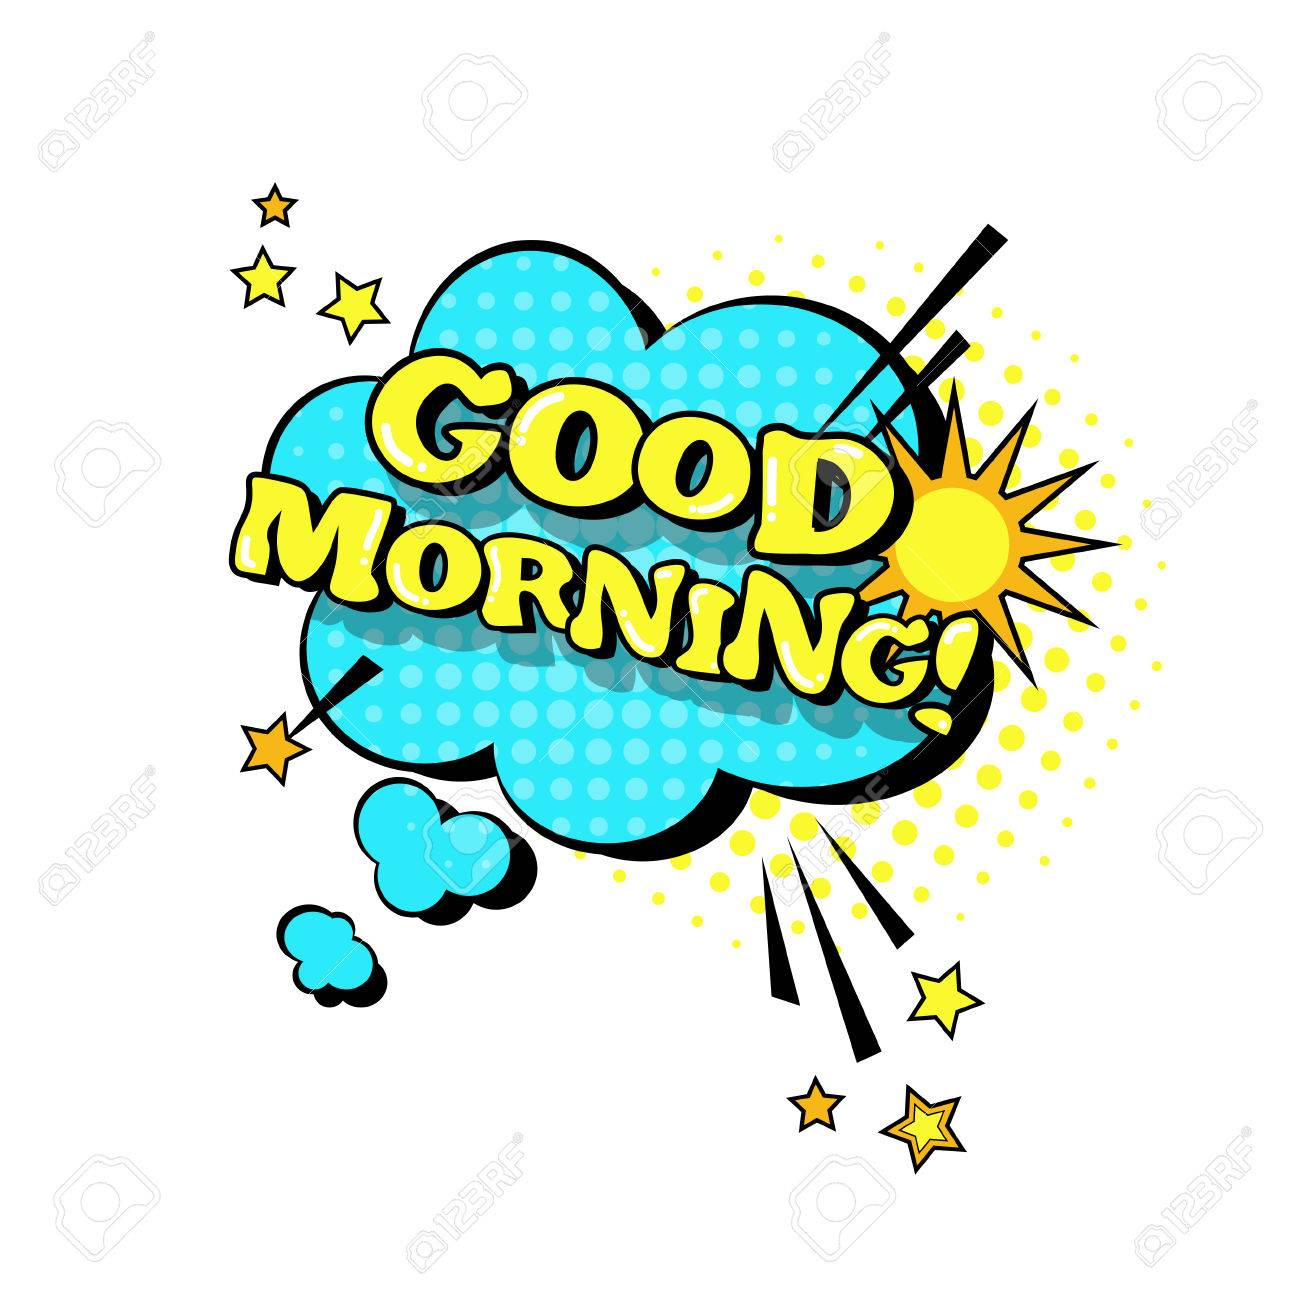 Comic Speech Chat Bubble Pop Art Style Good Morning Expression